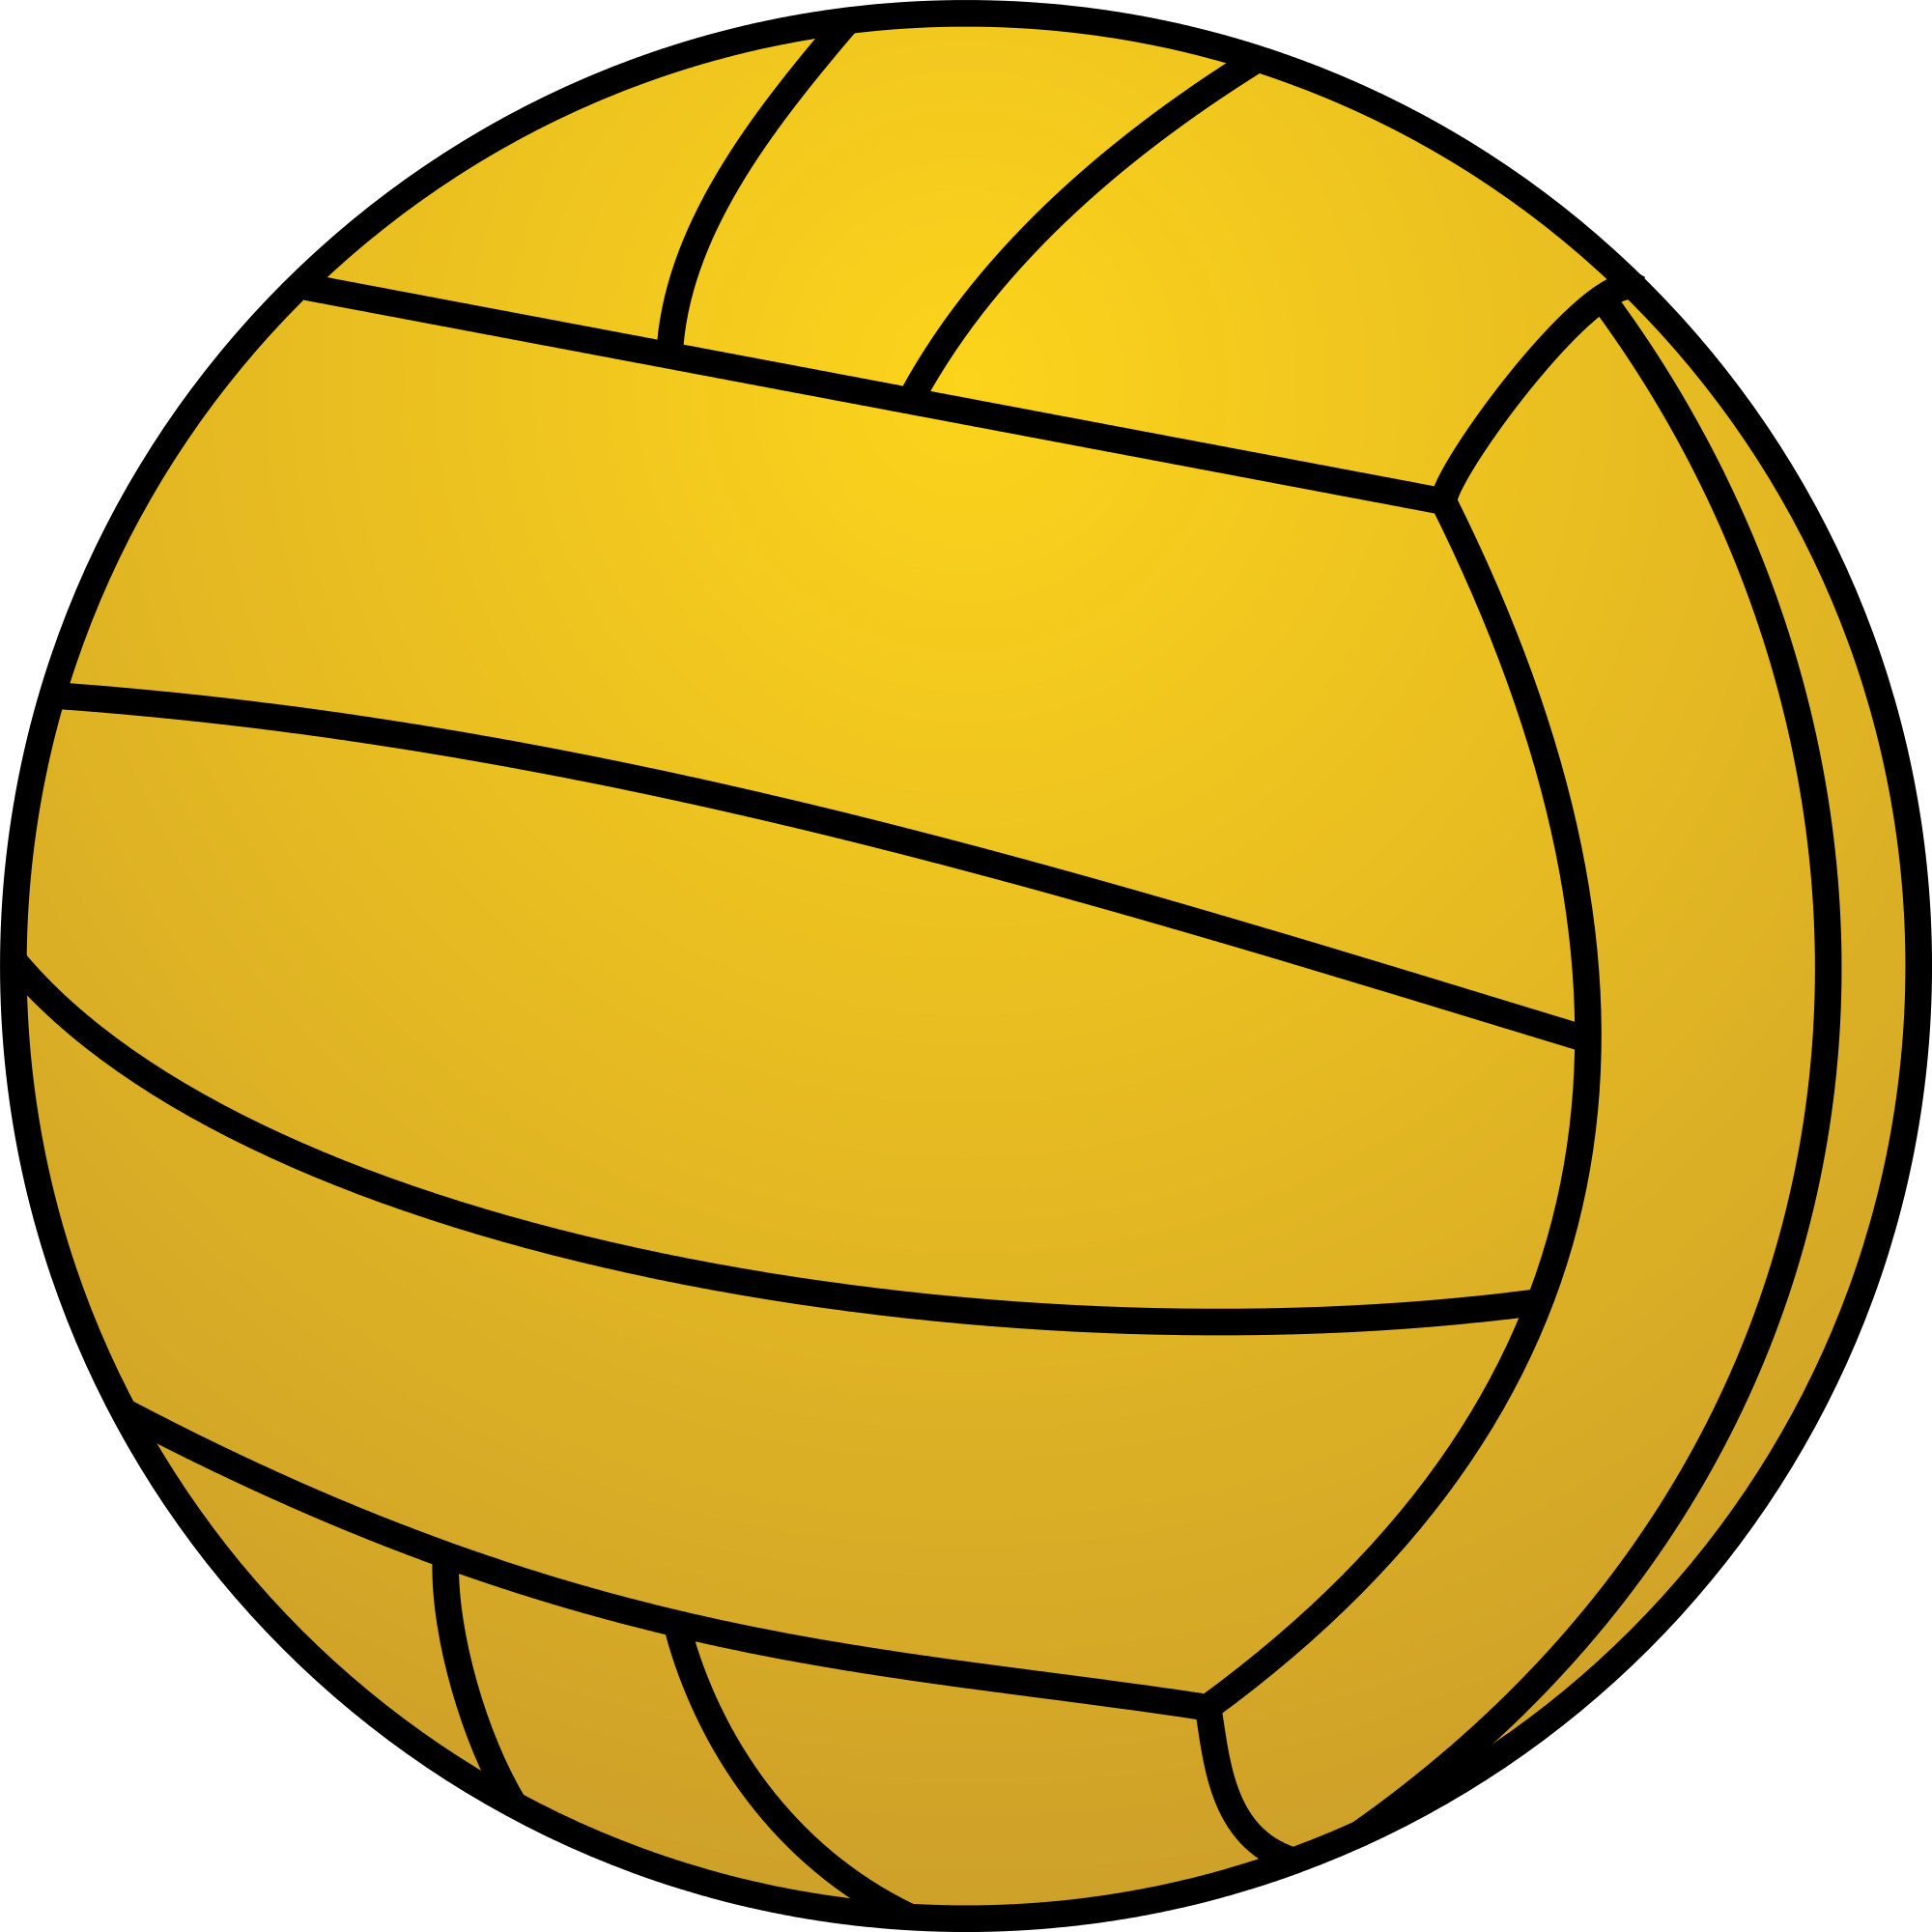 Clipart ball waterpolo. File water polo svg